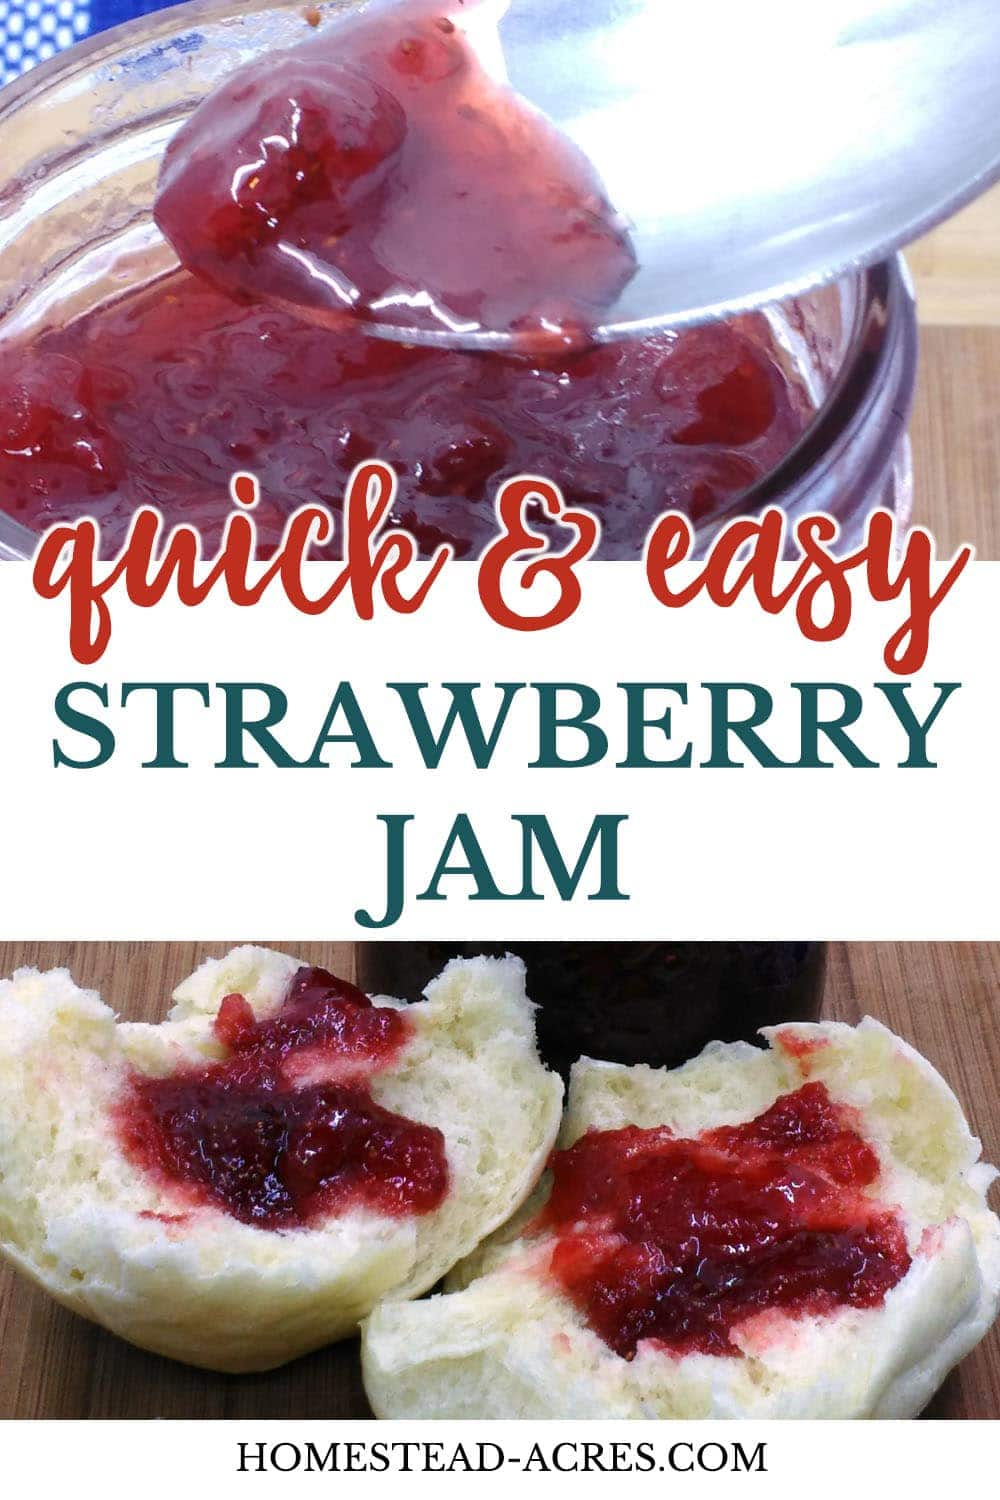 Photo collage on the top is strawberry jam being spooned out, the bottom is strawberry jam on a dinner roll. Overlaid text says Quick and Easy Strawberry Jam.